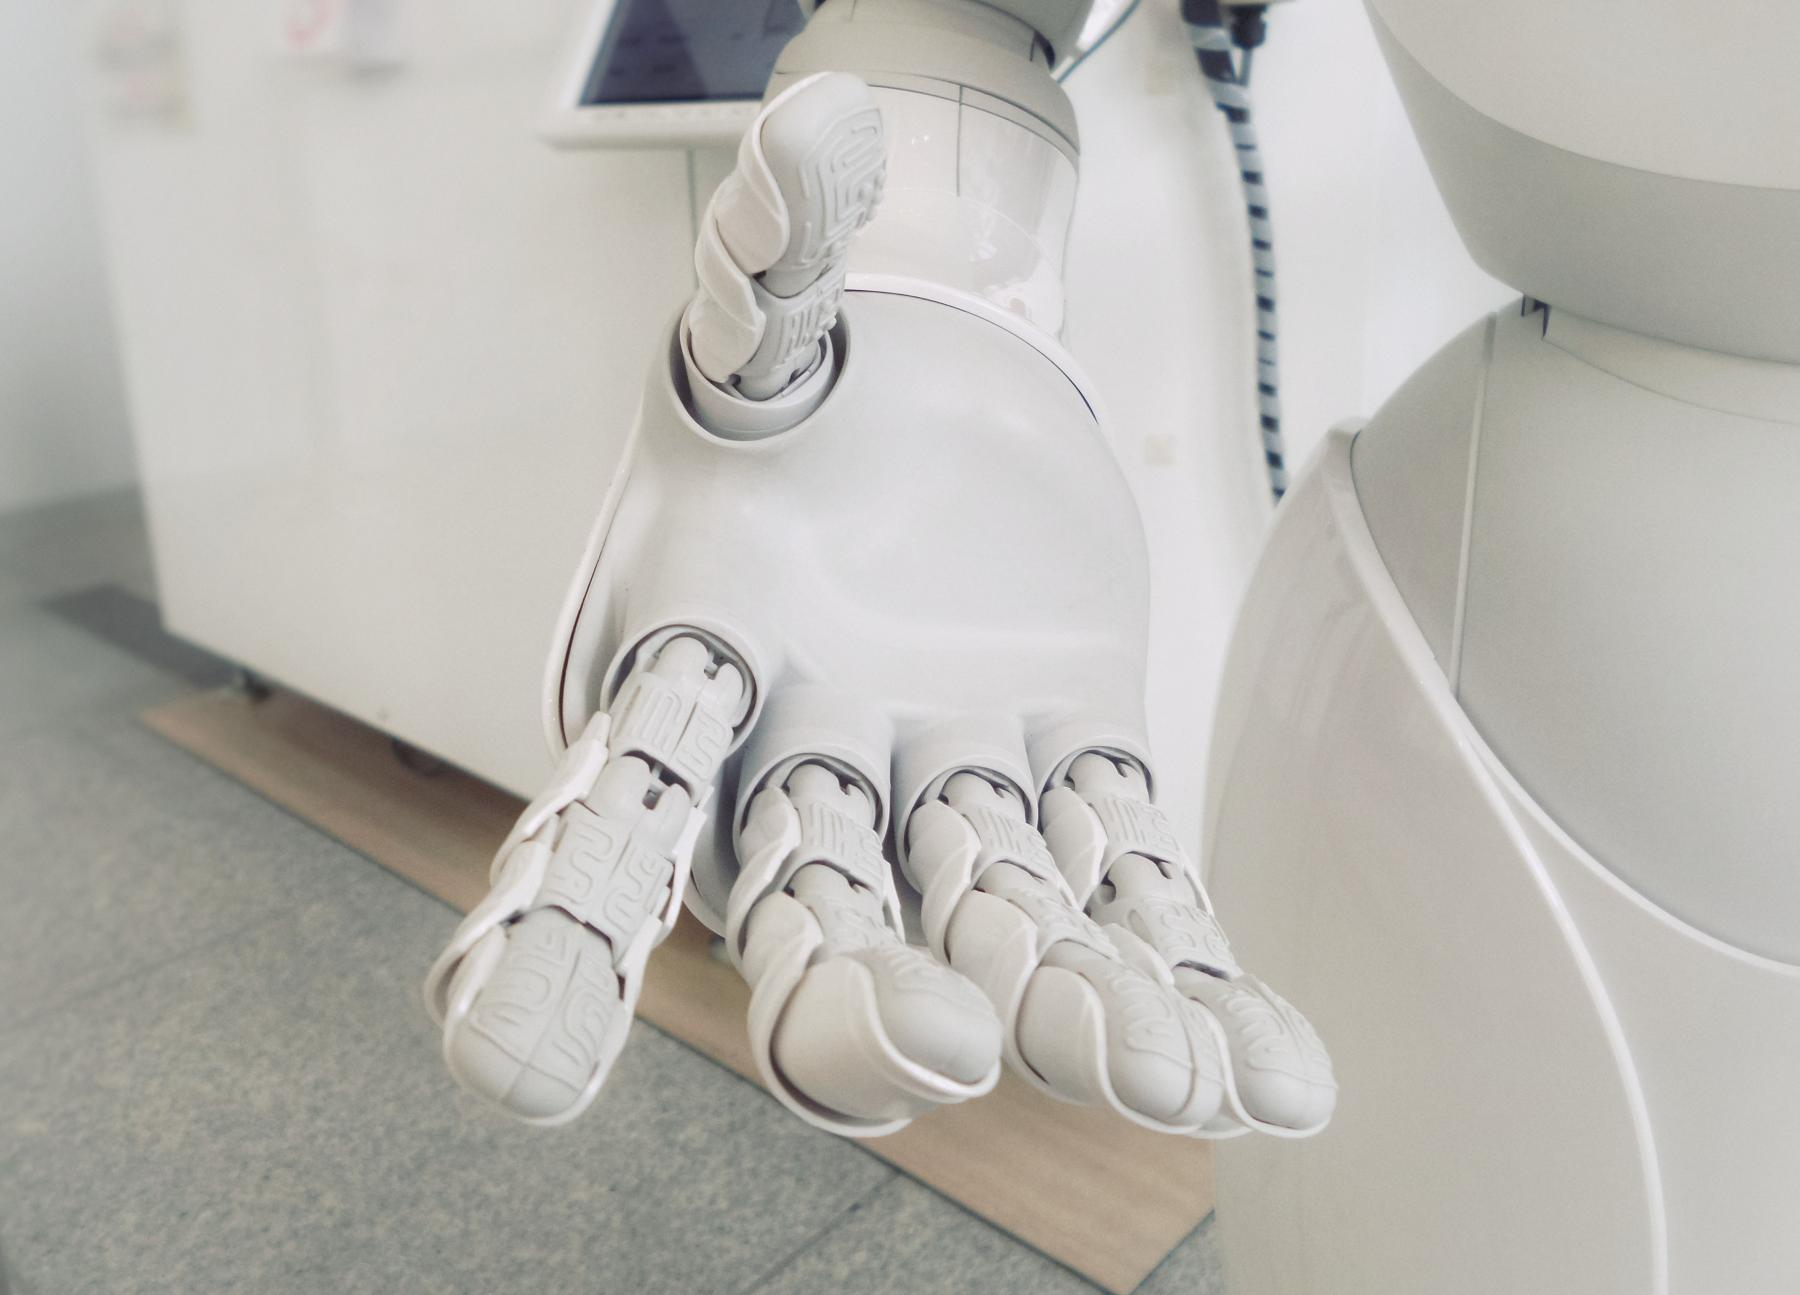 Supporting buyers of AI in health and care